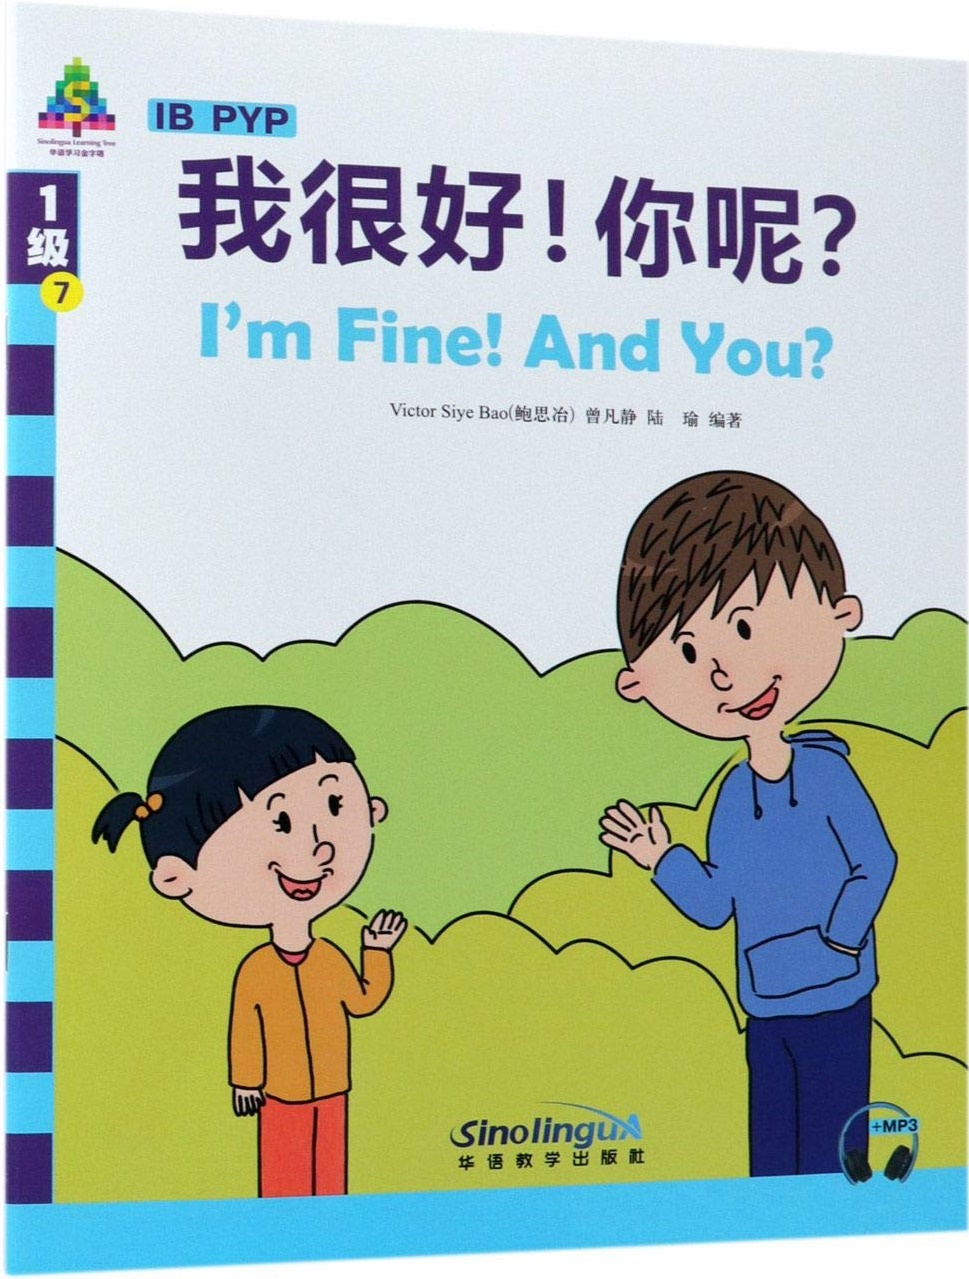 I'm Fine! And You?  - Sinolingua Learning Tree for IB PYP (Level 1)